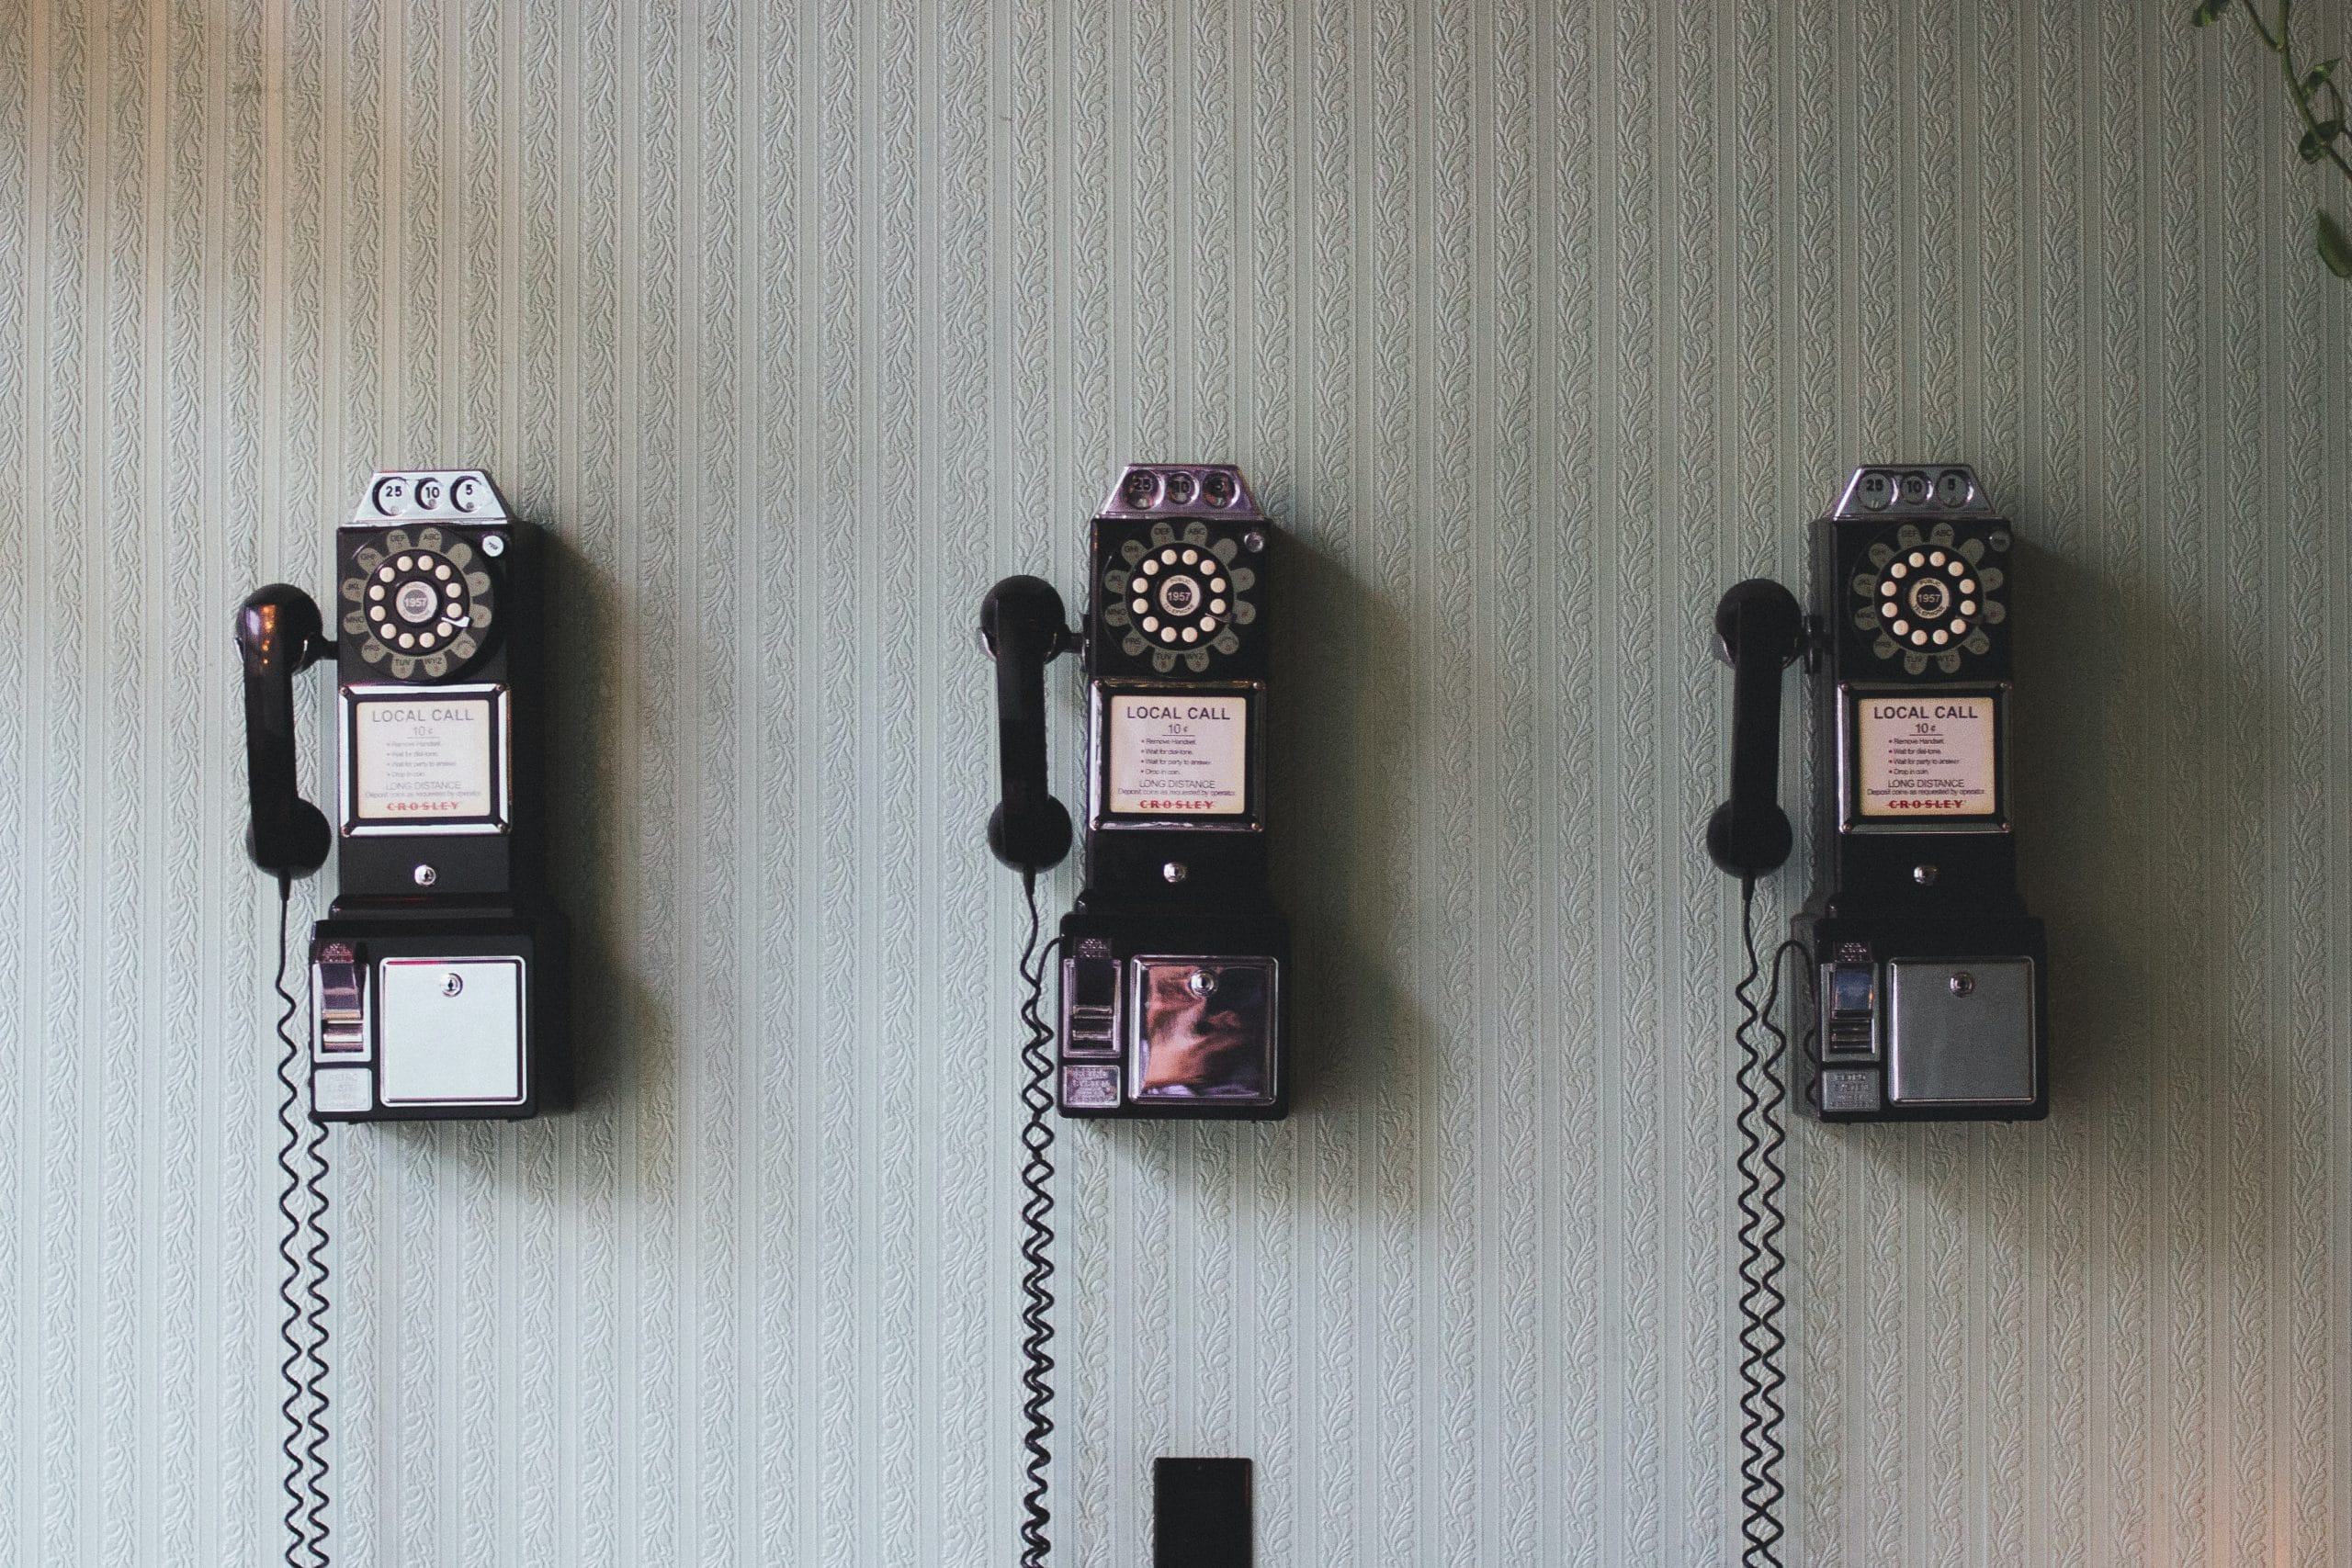 A row of pay phones symbolizes the many communication channels in omnichannel contact centers